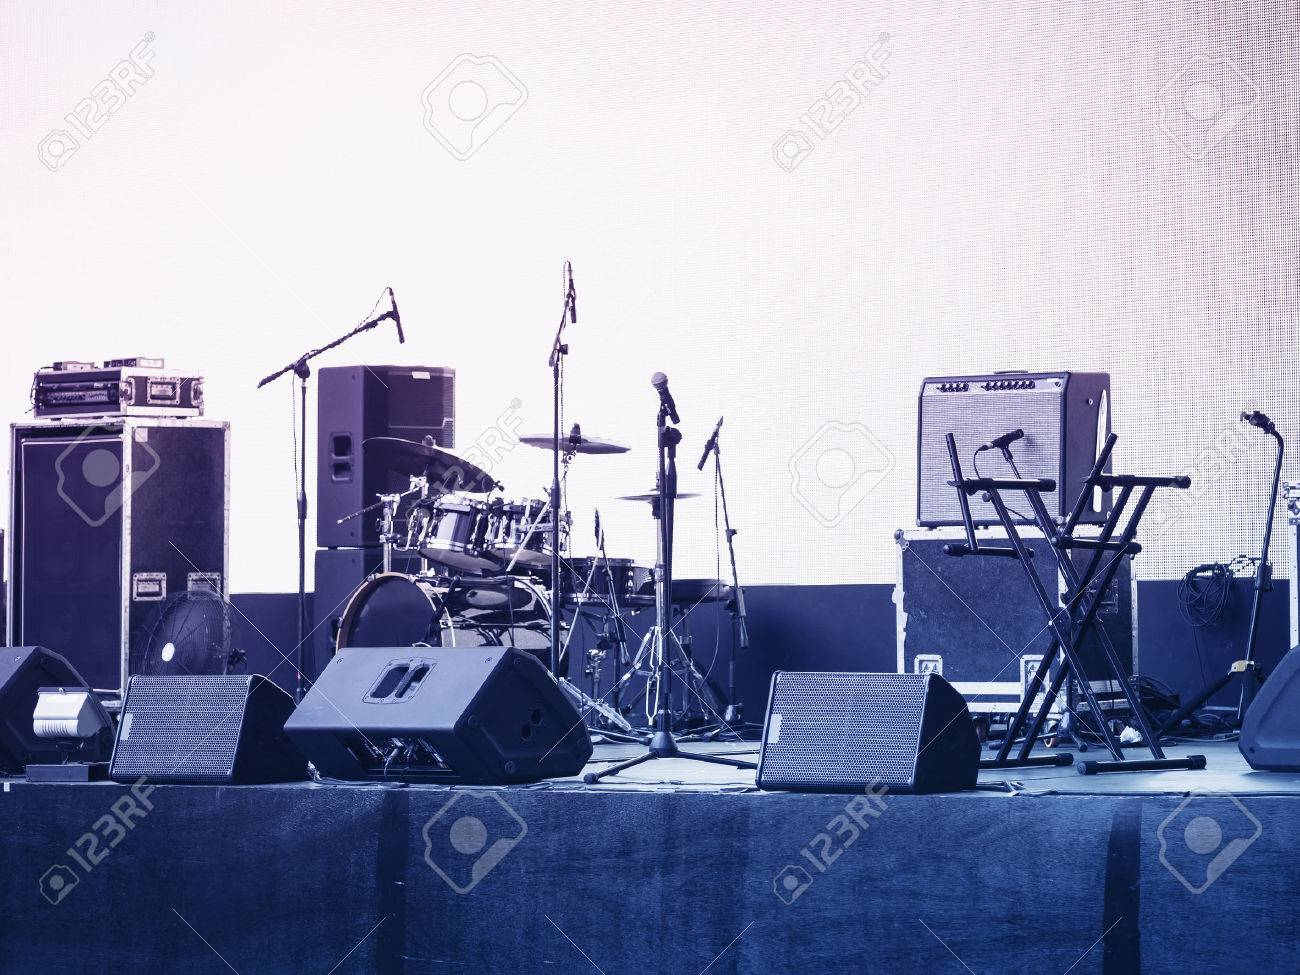 Empty outdoor rock stage - Outdoor Concert Stage Concert Stage Music And Sound Equipment Event Background Stock Photo